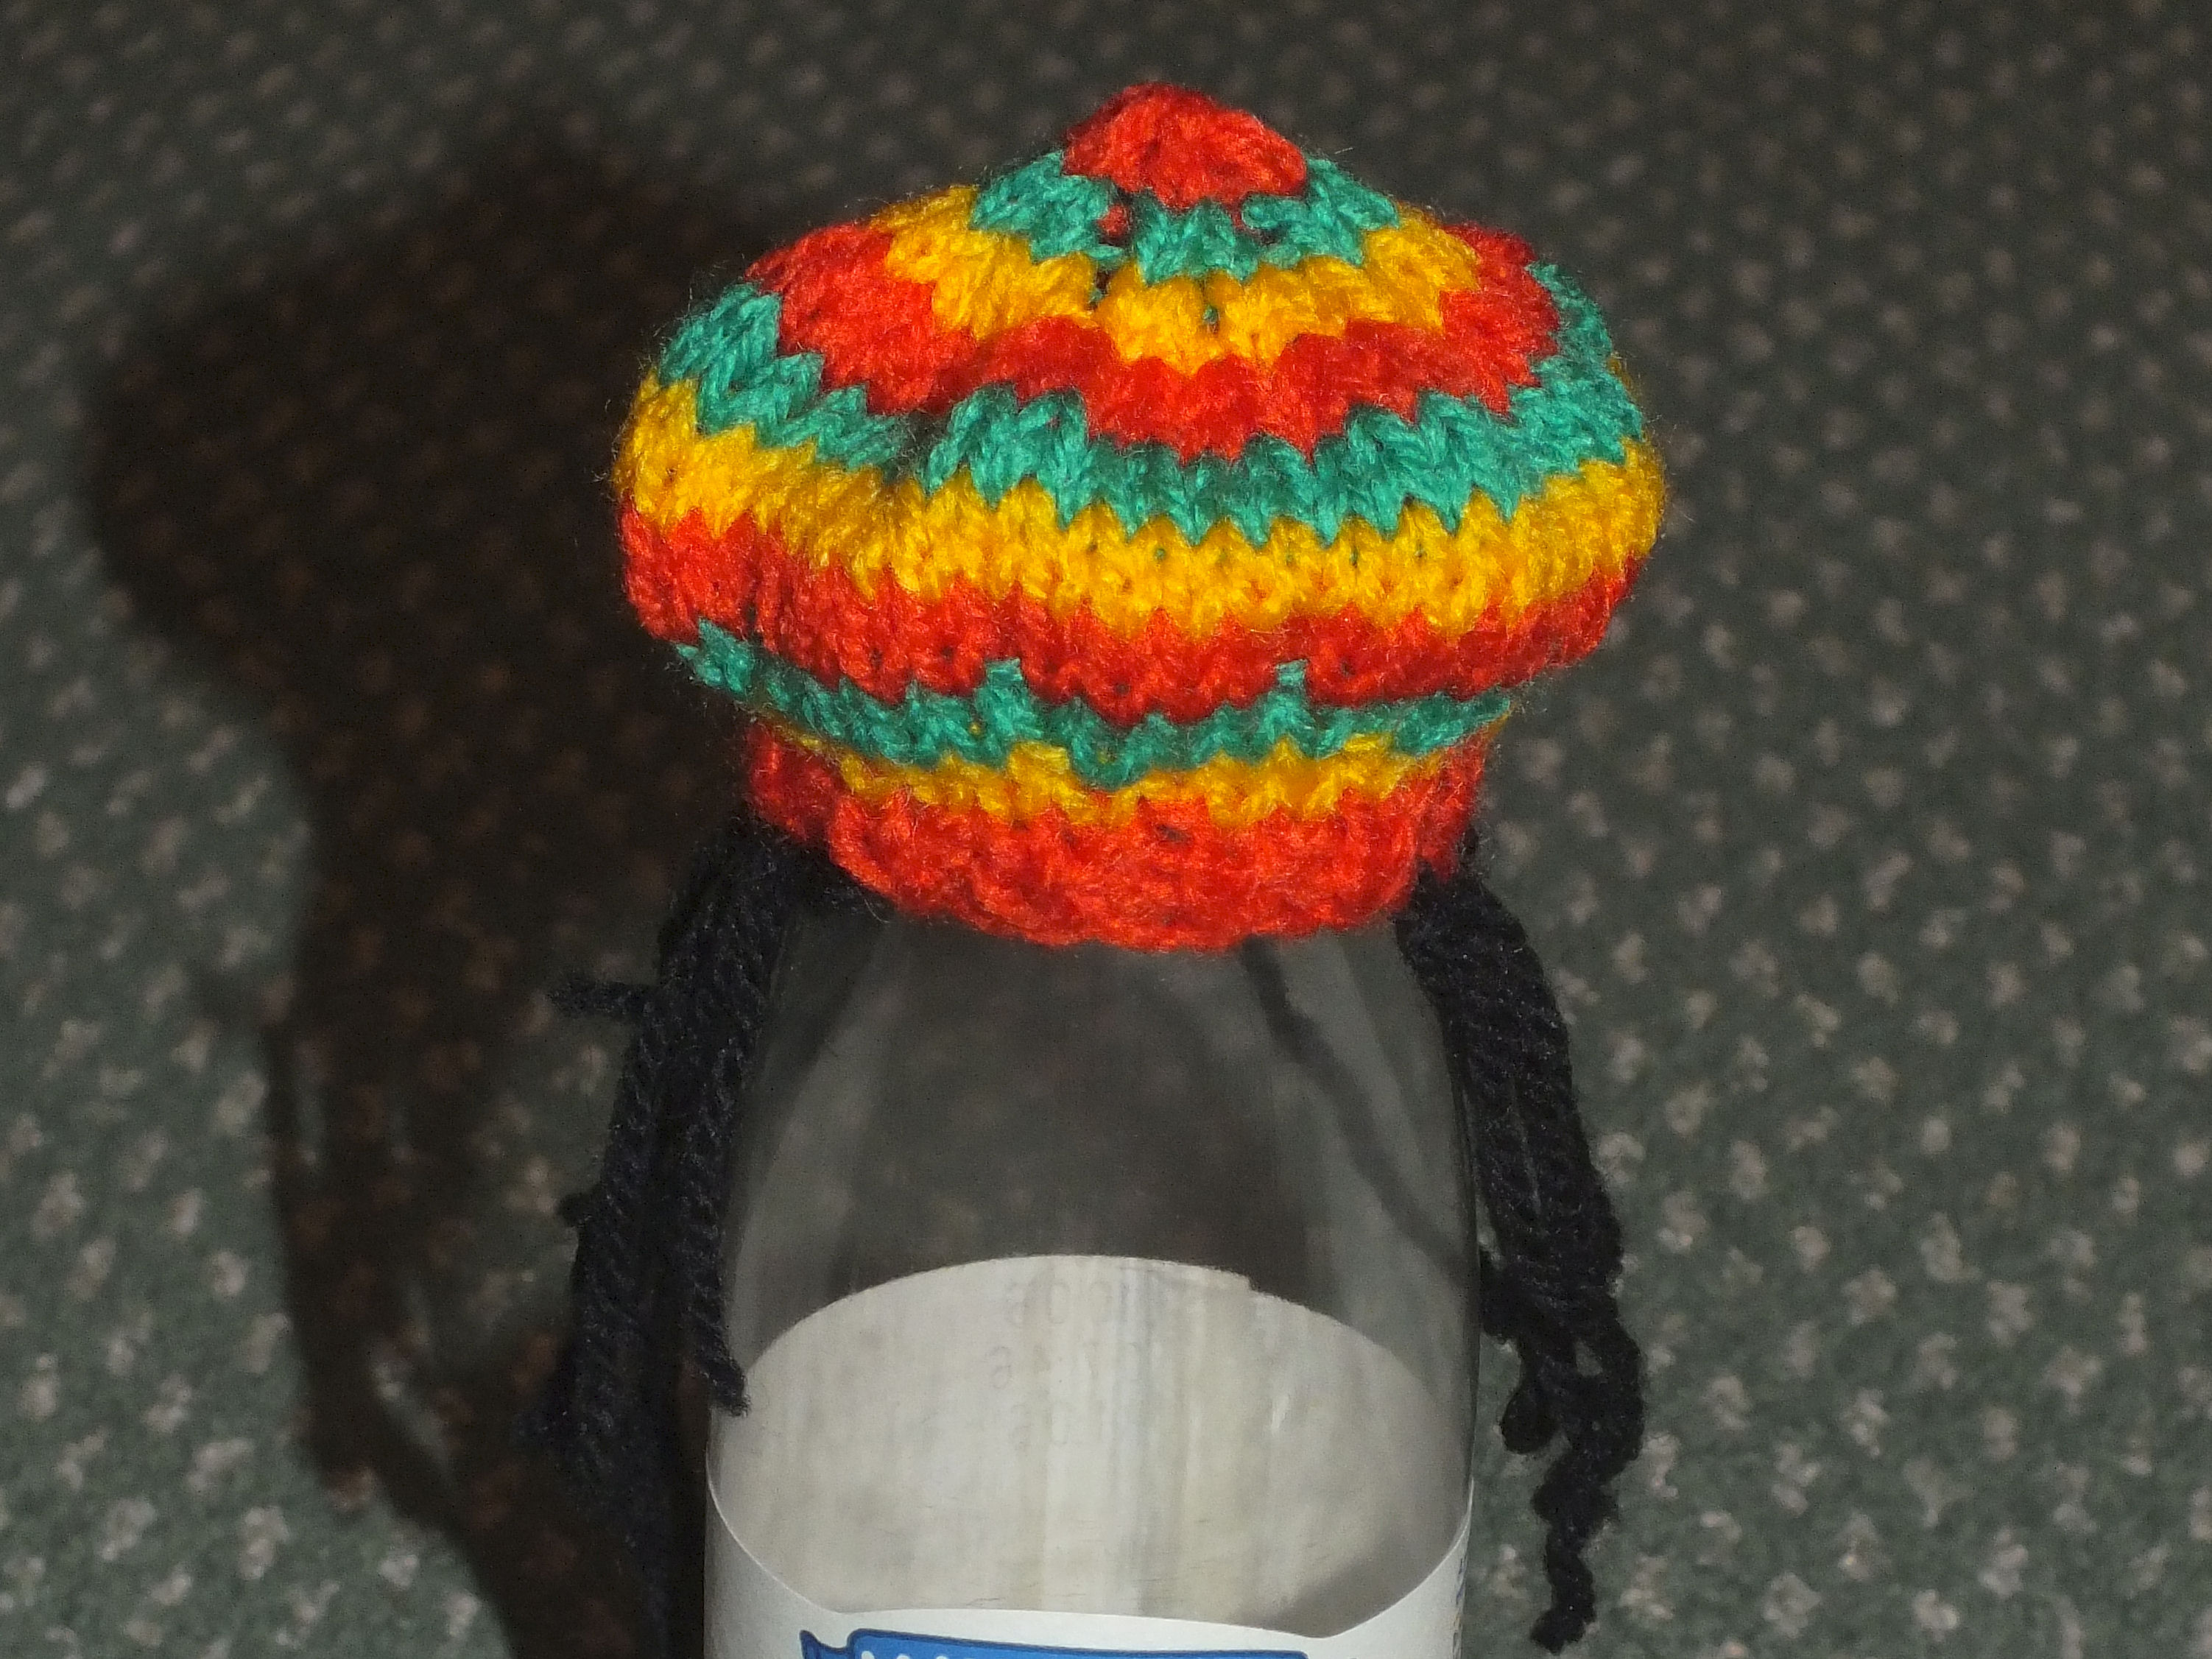 Knitting Patterns For Innocent Smoothie Hats : Innocent Smoothie Knitted Hats images